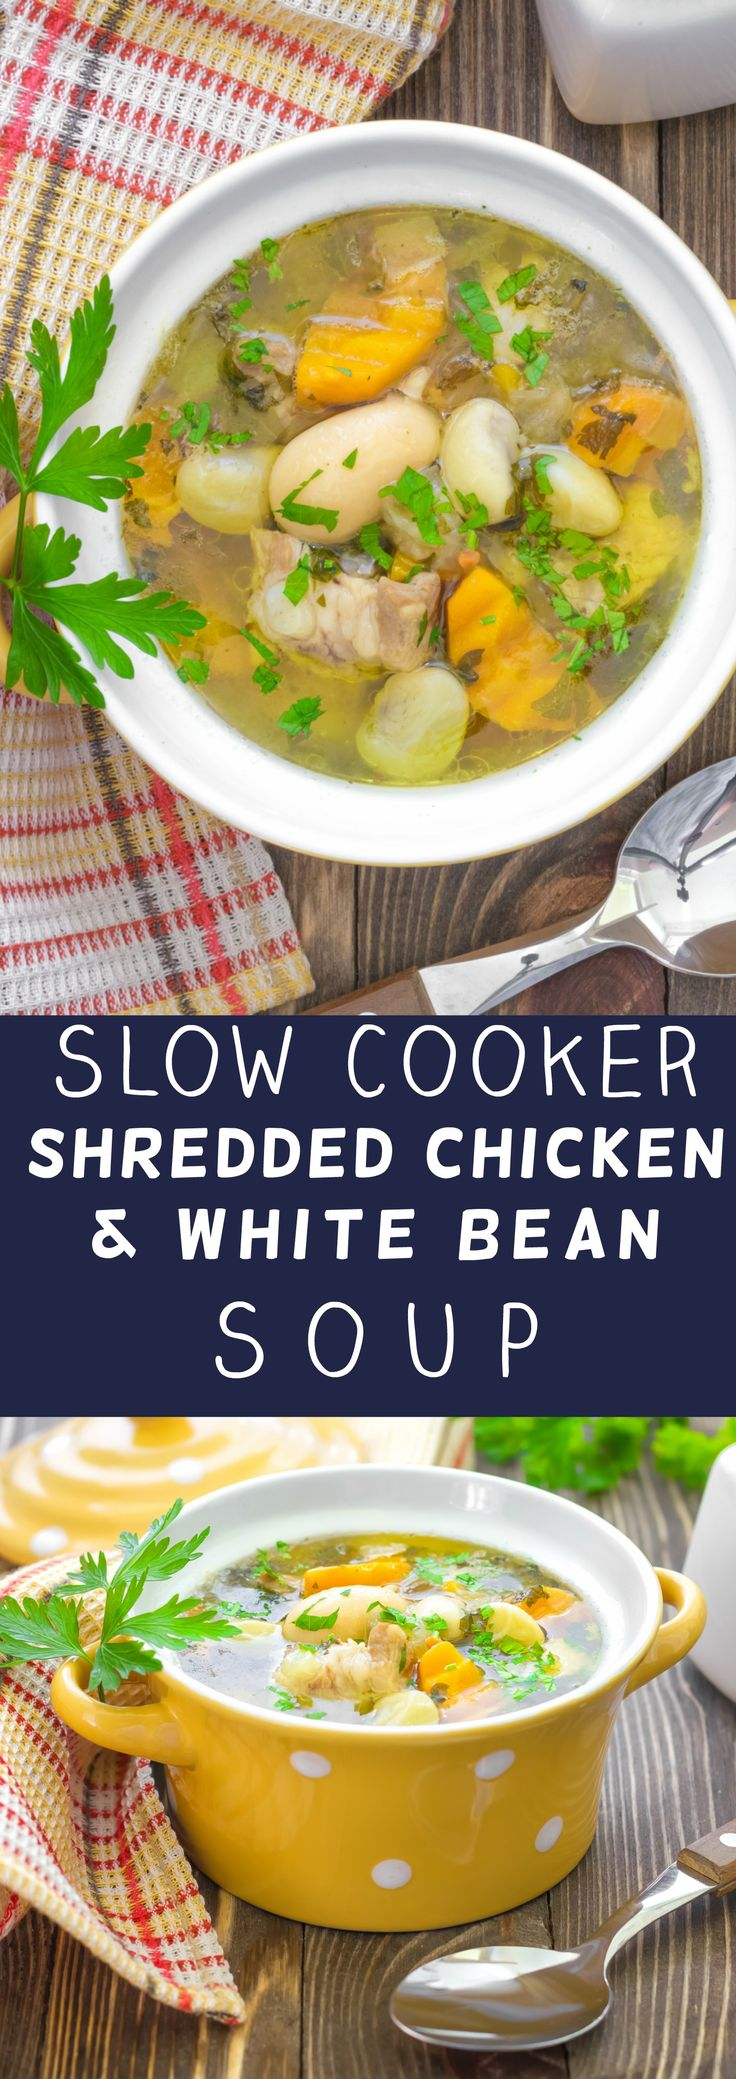 Slow Cooker Shredded Chicken and White Bean Soup is packed with healthy, hearty vegetables which is going to warm up your dinner table! This recipe is easy to make - throw all the ingredients in your crock pot for 8 hours and it's ready! Even better - this meal is economical and doesn't cost much to make!